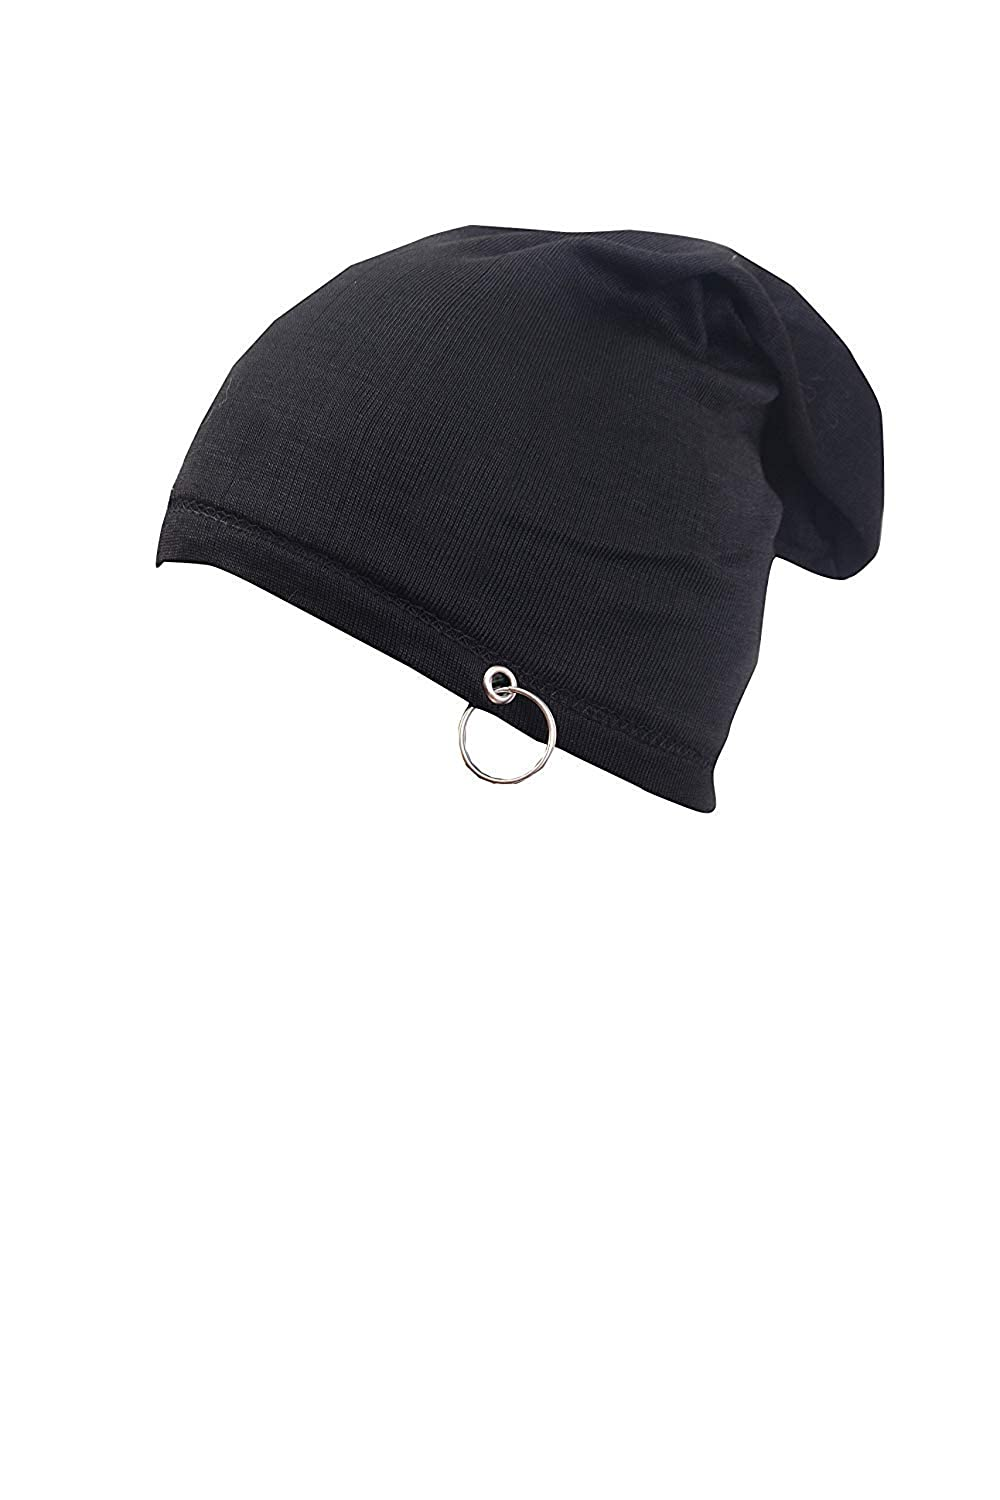 2e73e042093 Malvina Ring Beanie-ring Cap For All The Seasons  Amazon.in  Clothing    Accessories